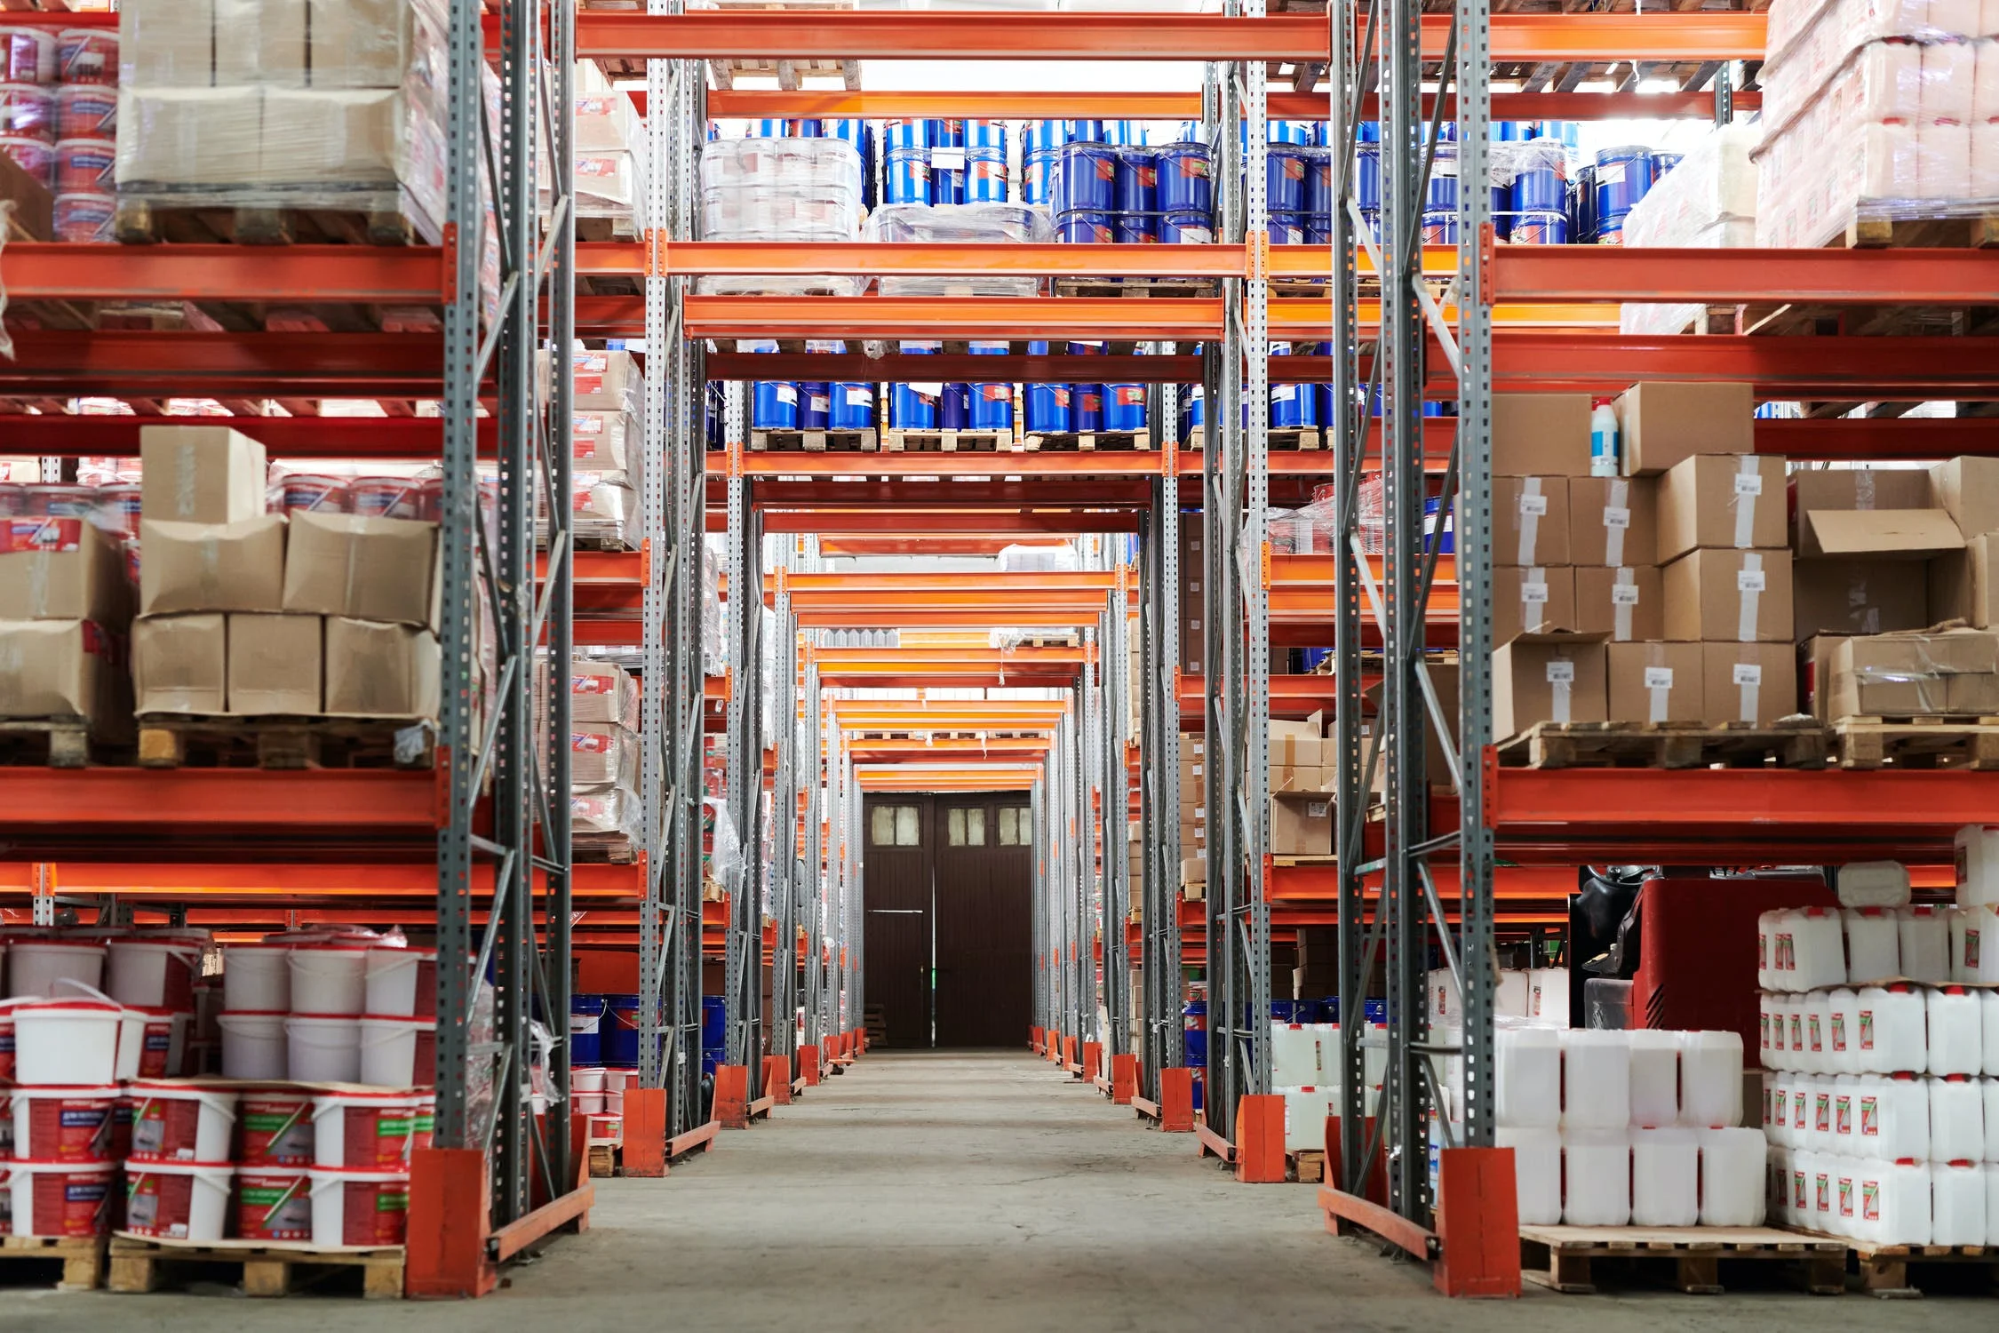 Should Your Business Be Smarter About Storage And Inventory?